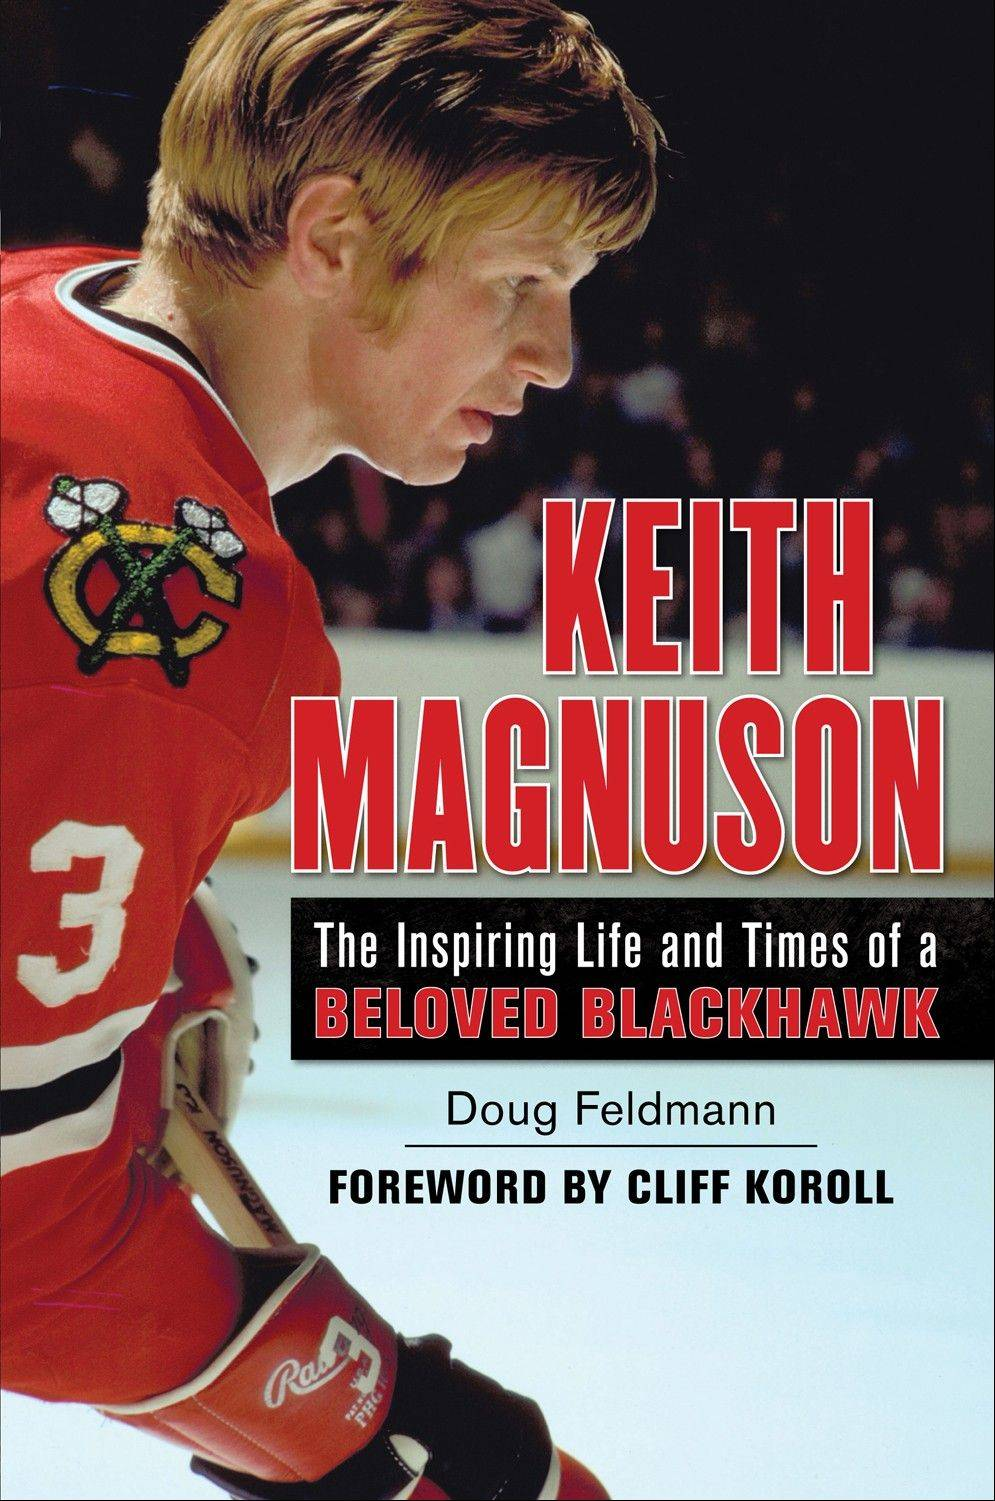 Here's a look at the cover of a new book on Keith Magnuson written by Doug Feldman of Algonquin.